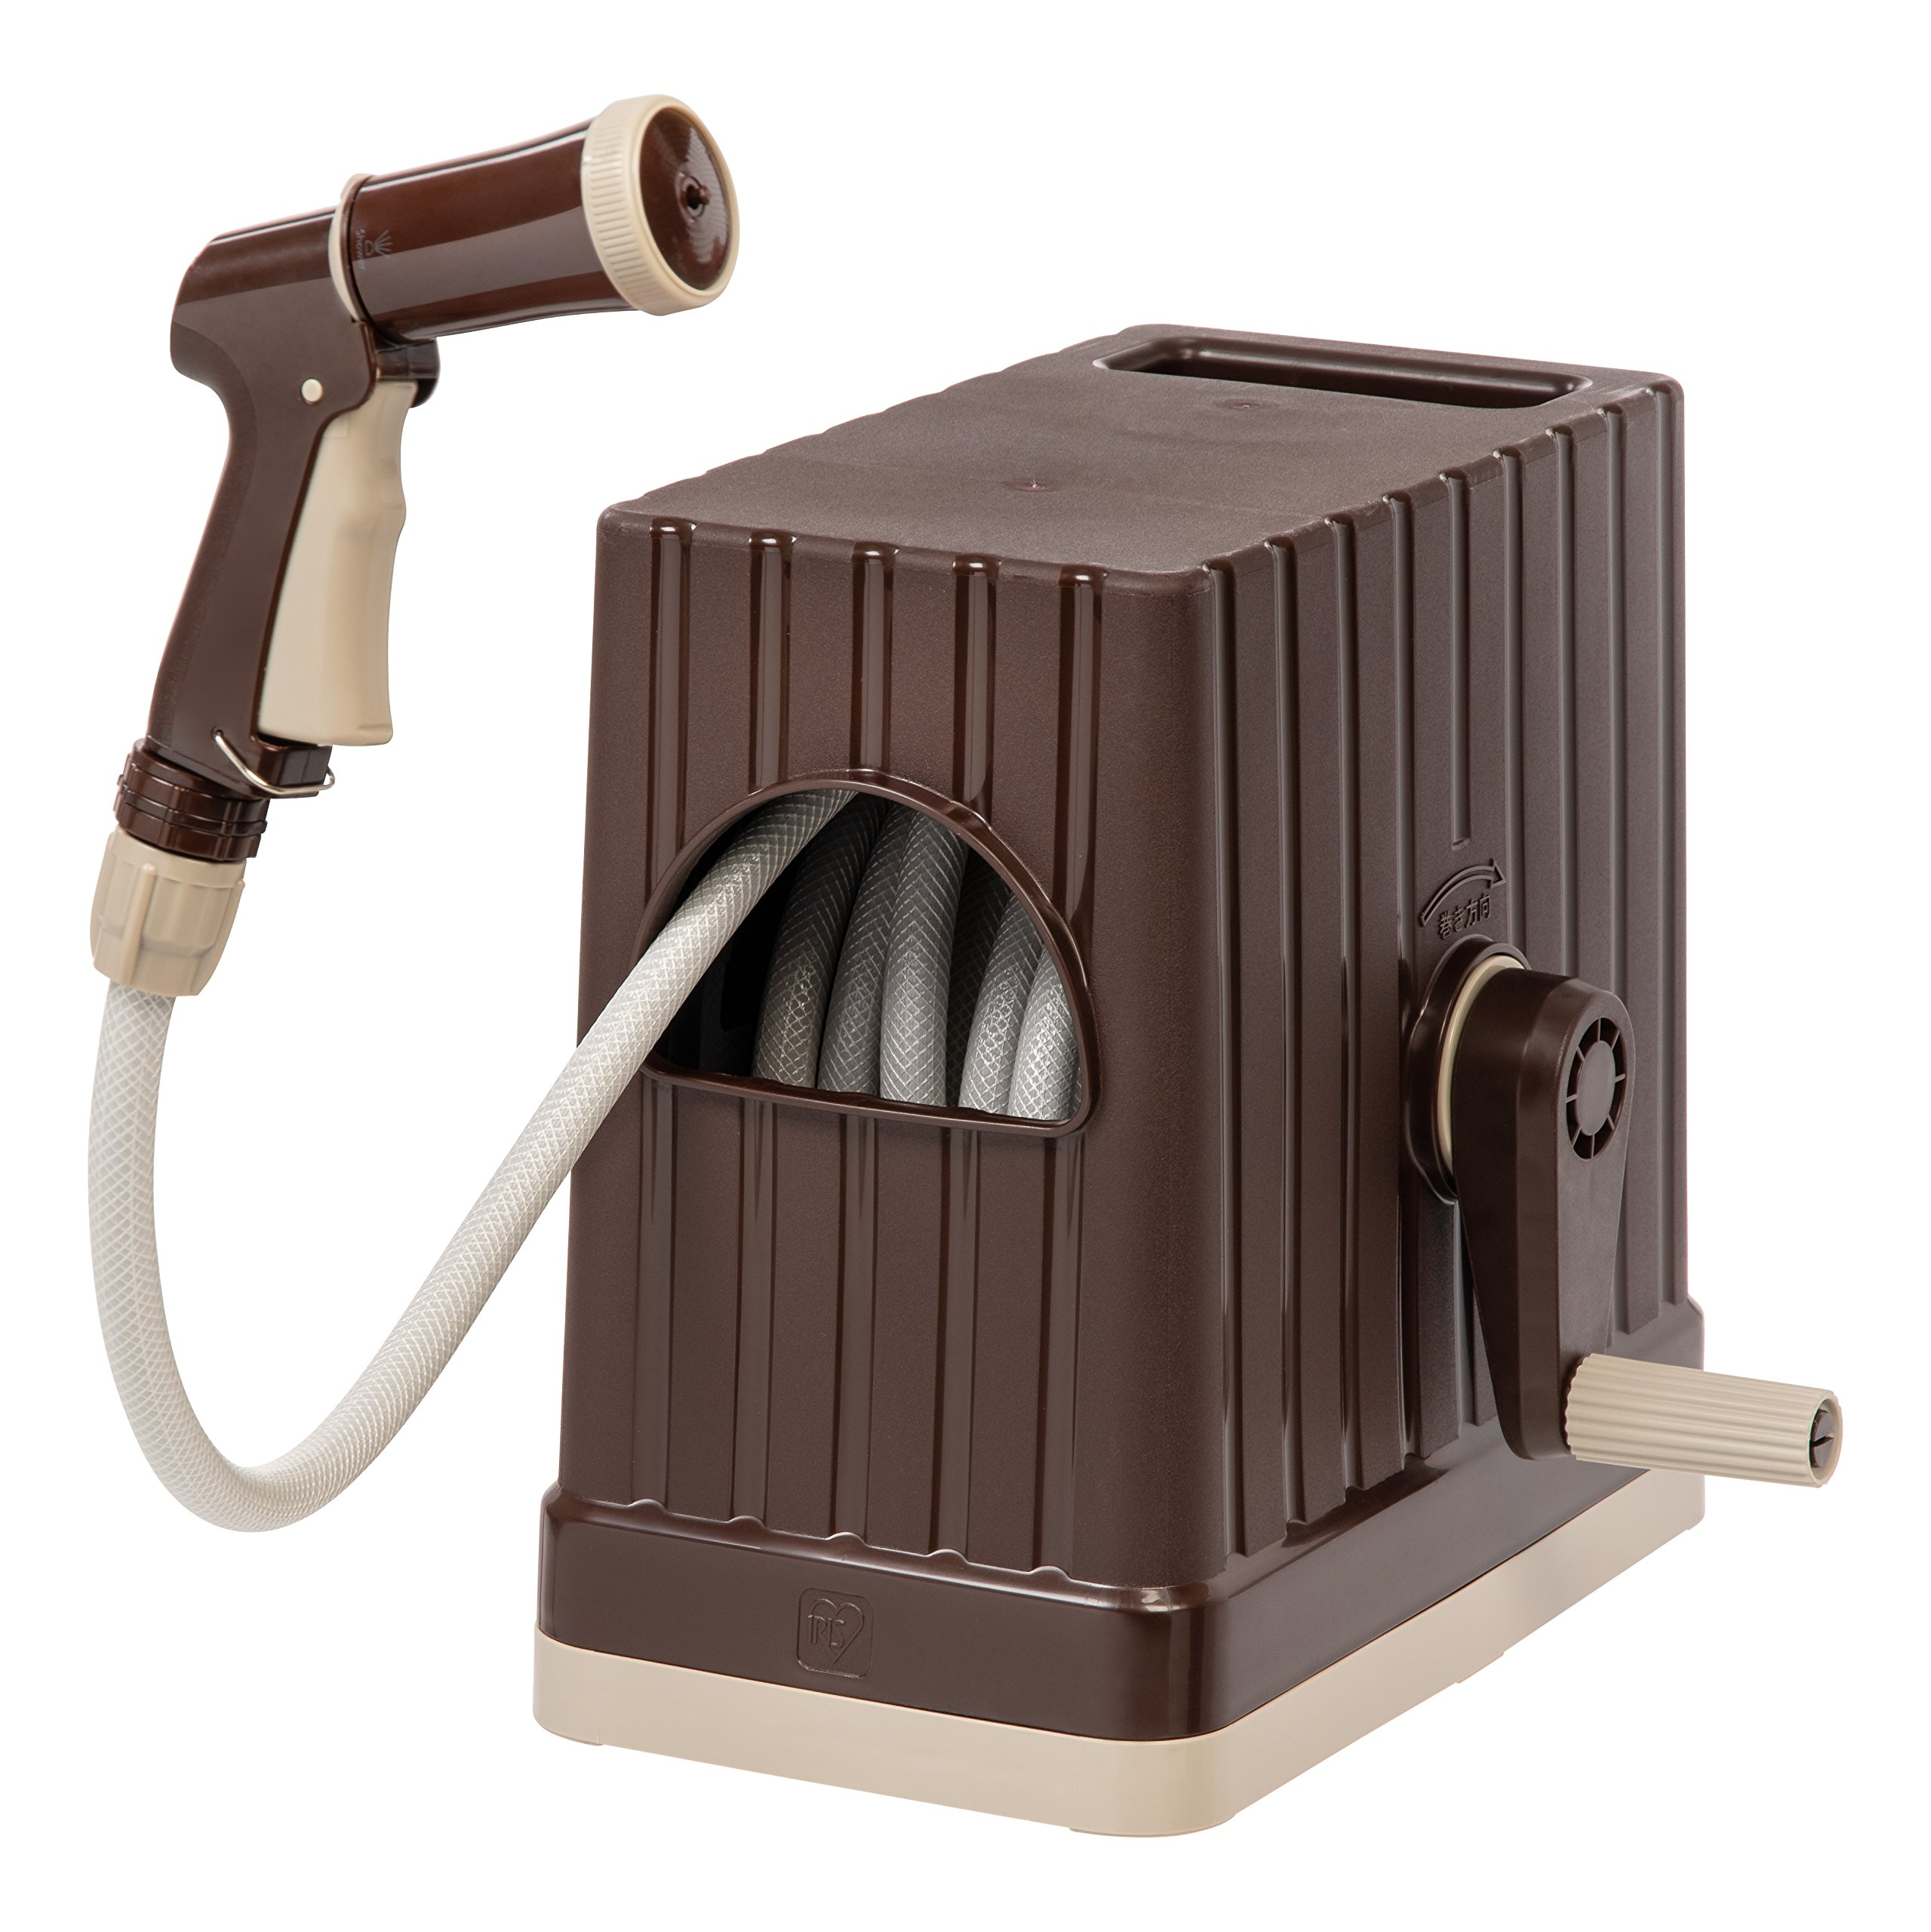 IRIS USA, FHEX-15 All-in-One Retractable Hose Reel Box with Hose and Nozzle, 48 ft, Brown by IRIS USA, Inc.